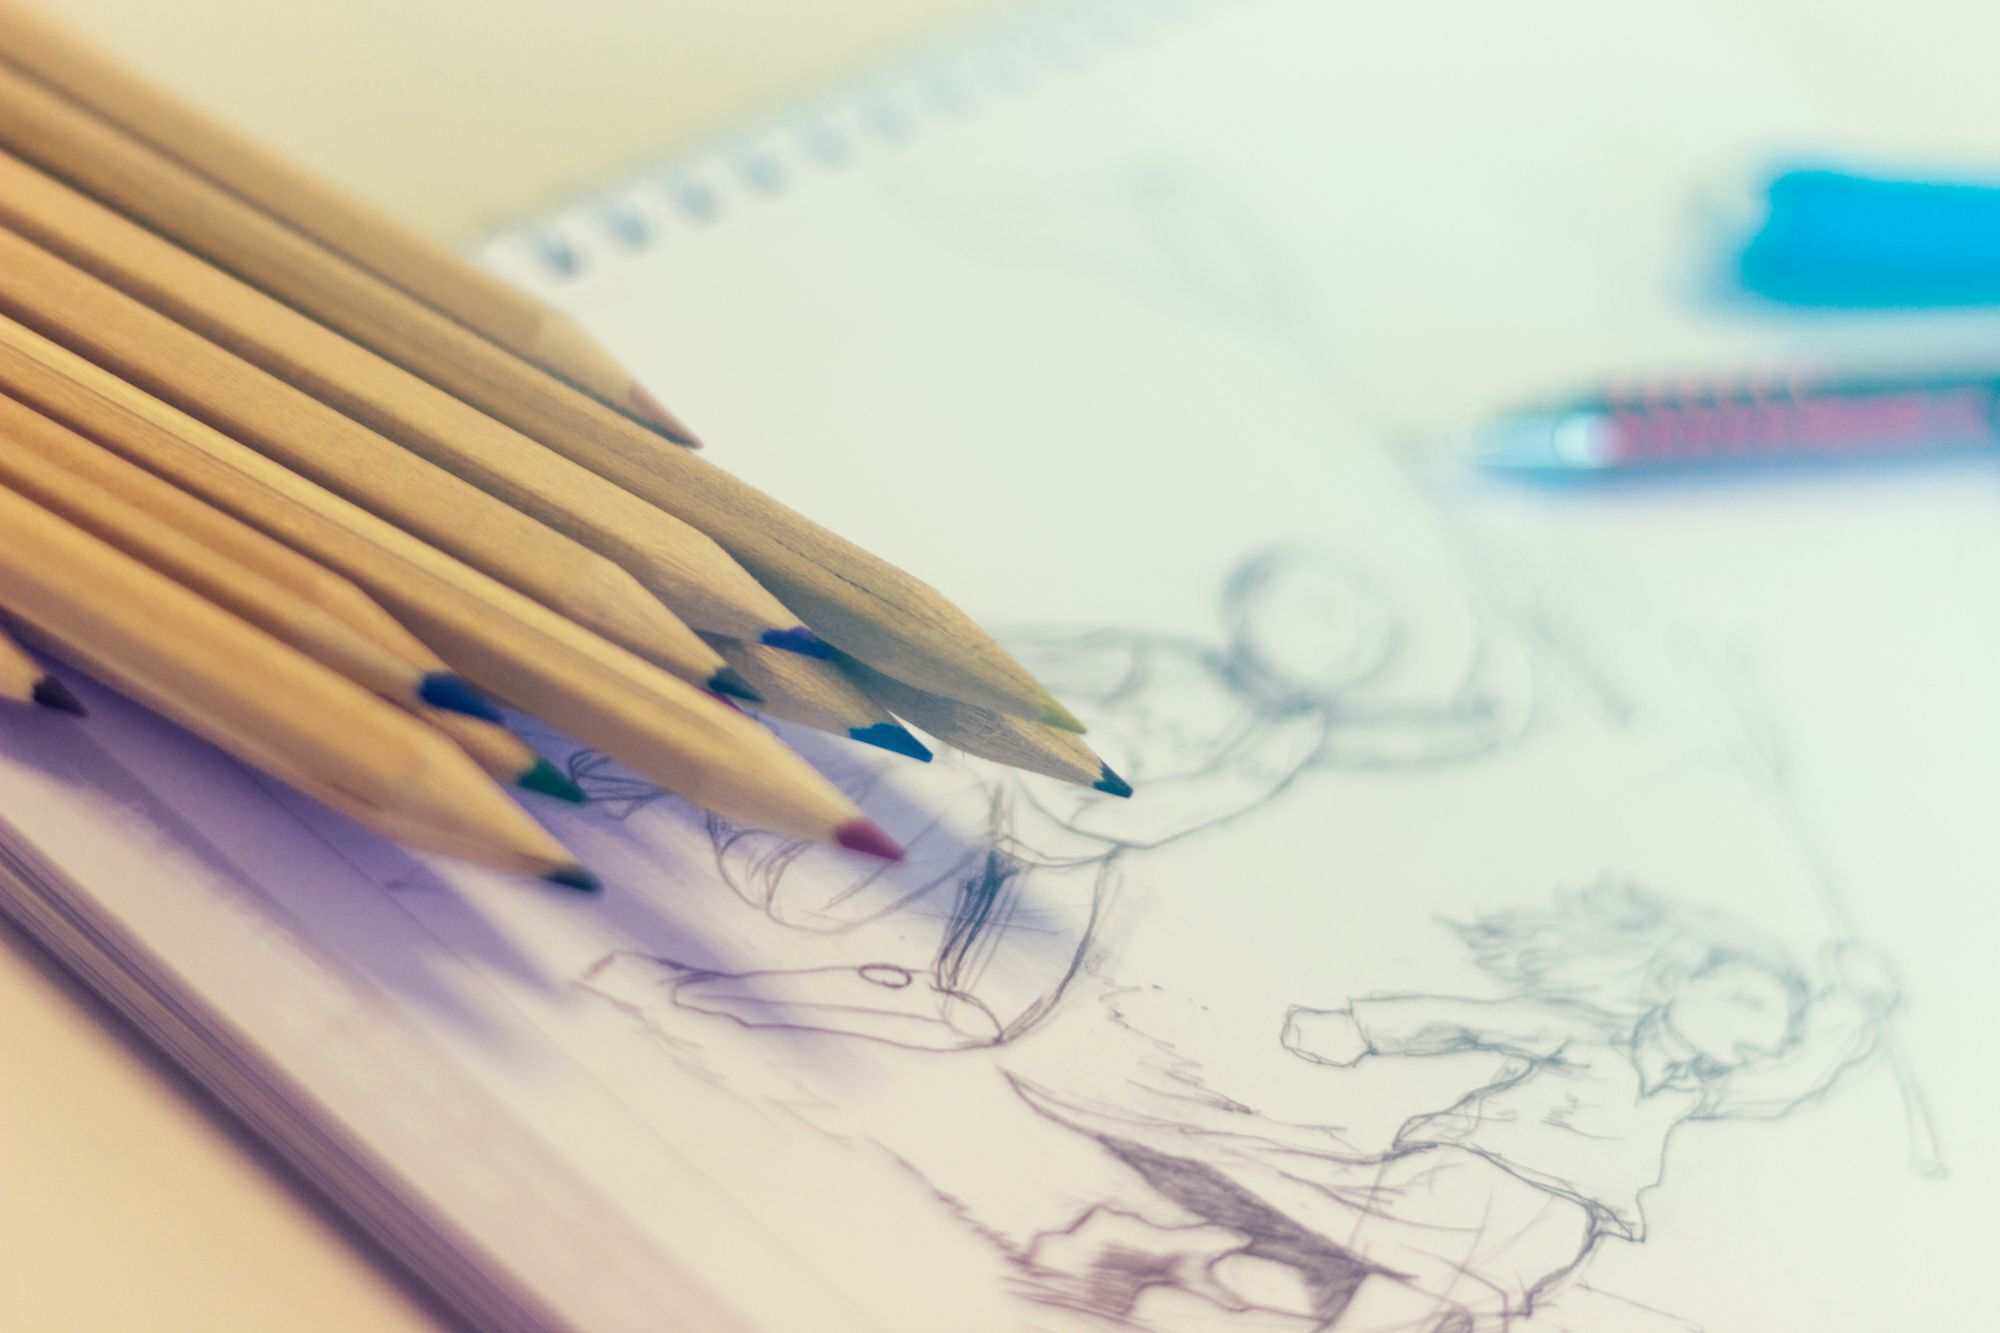 The Ultimate List of Things To Draw